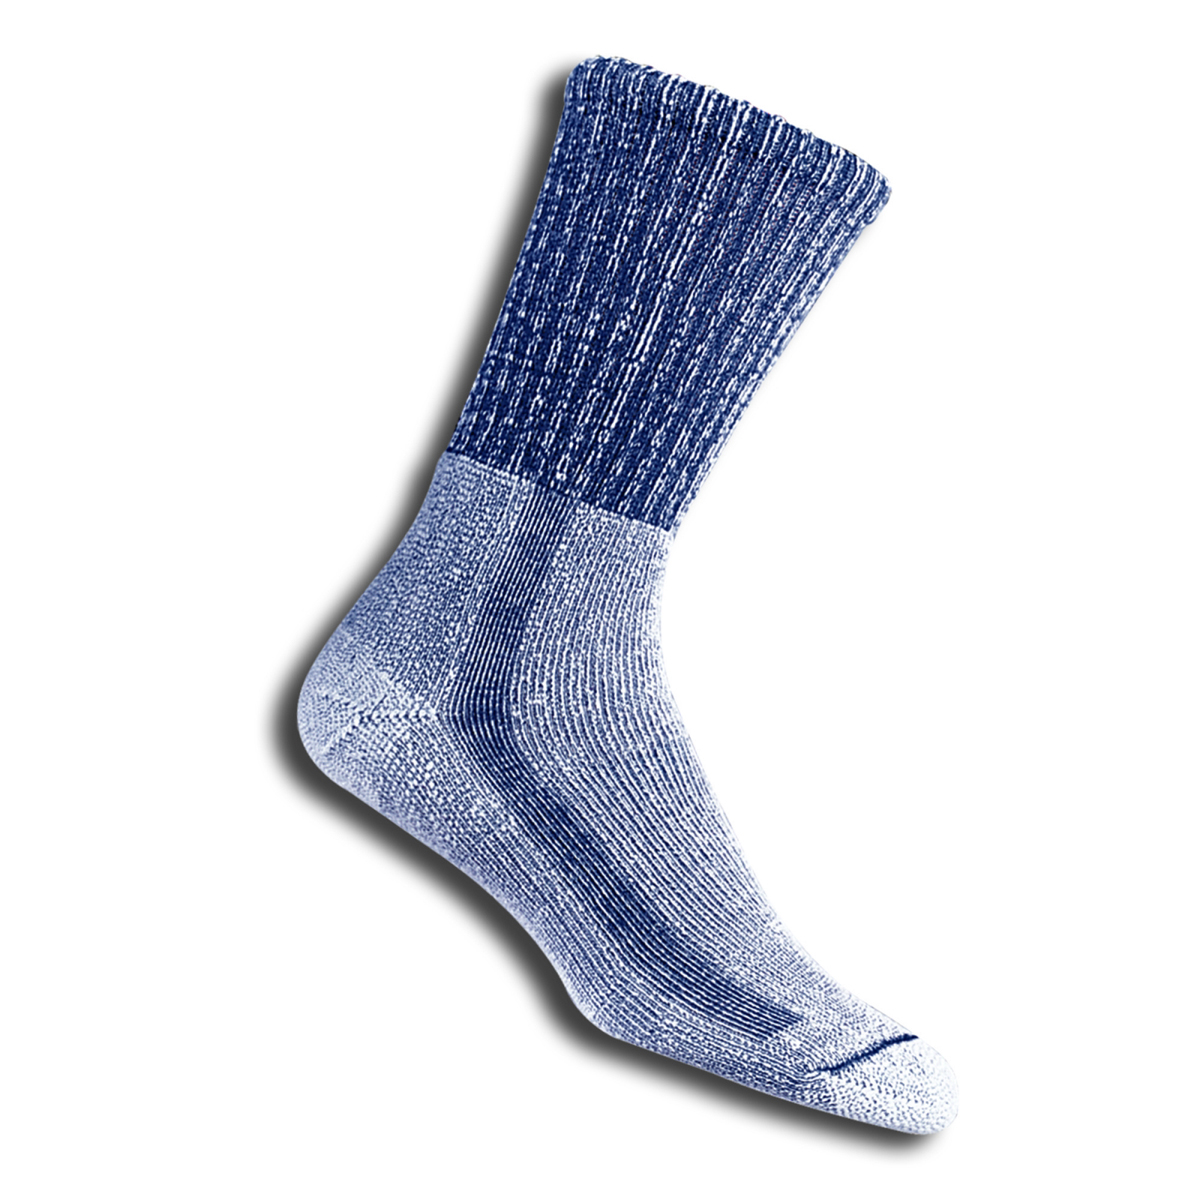 THORLO LIGHT HIKING SOCKS (LTH)